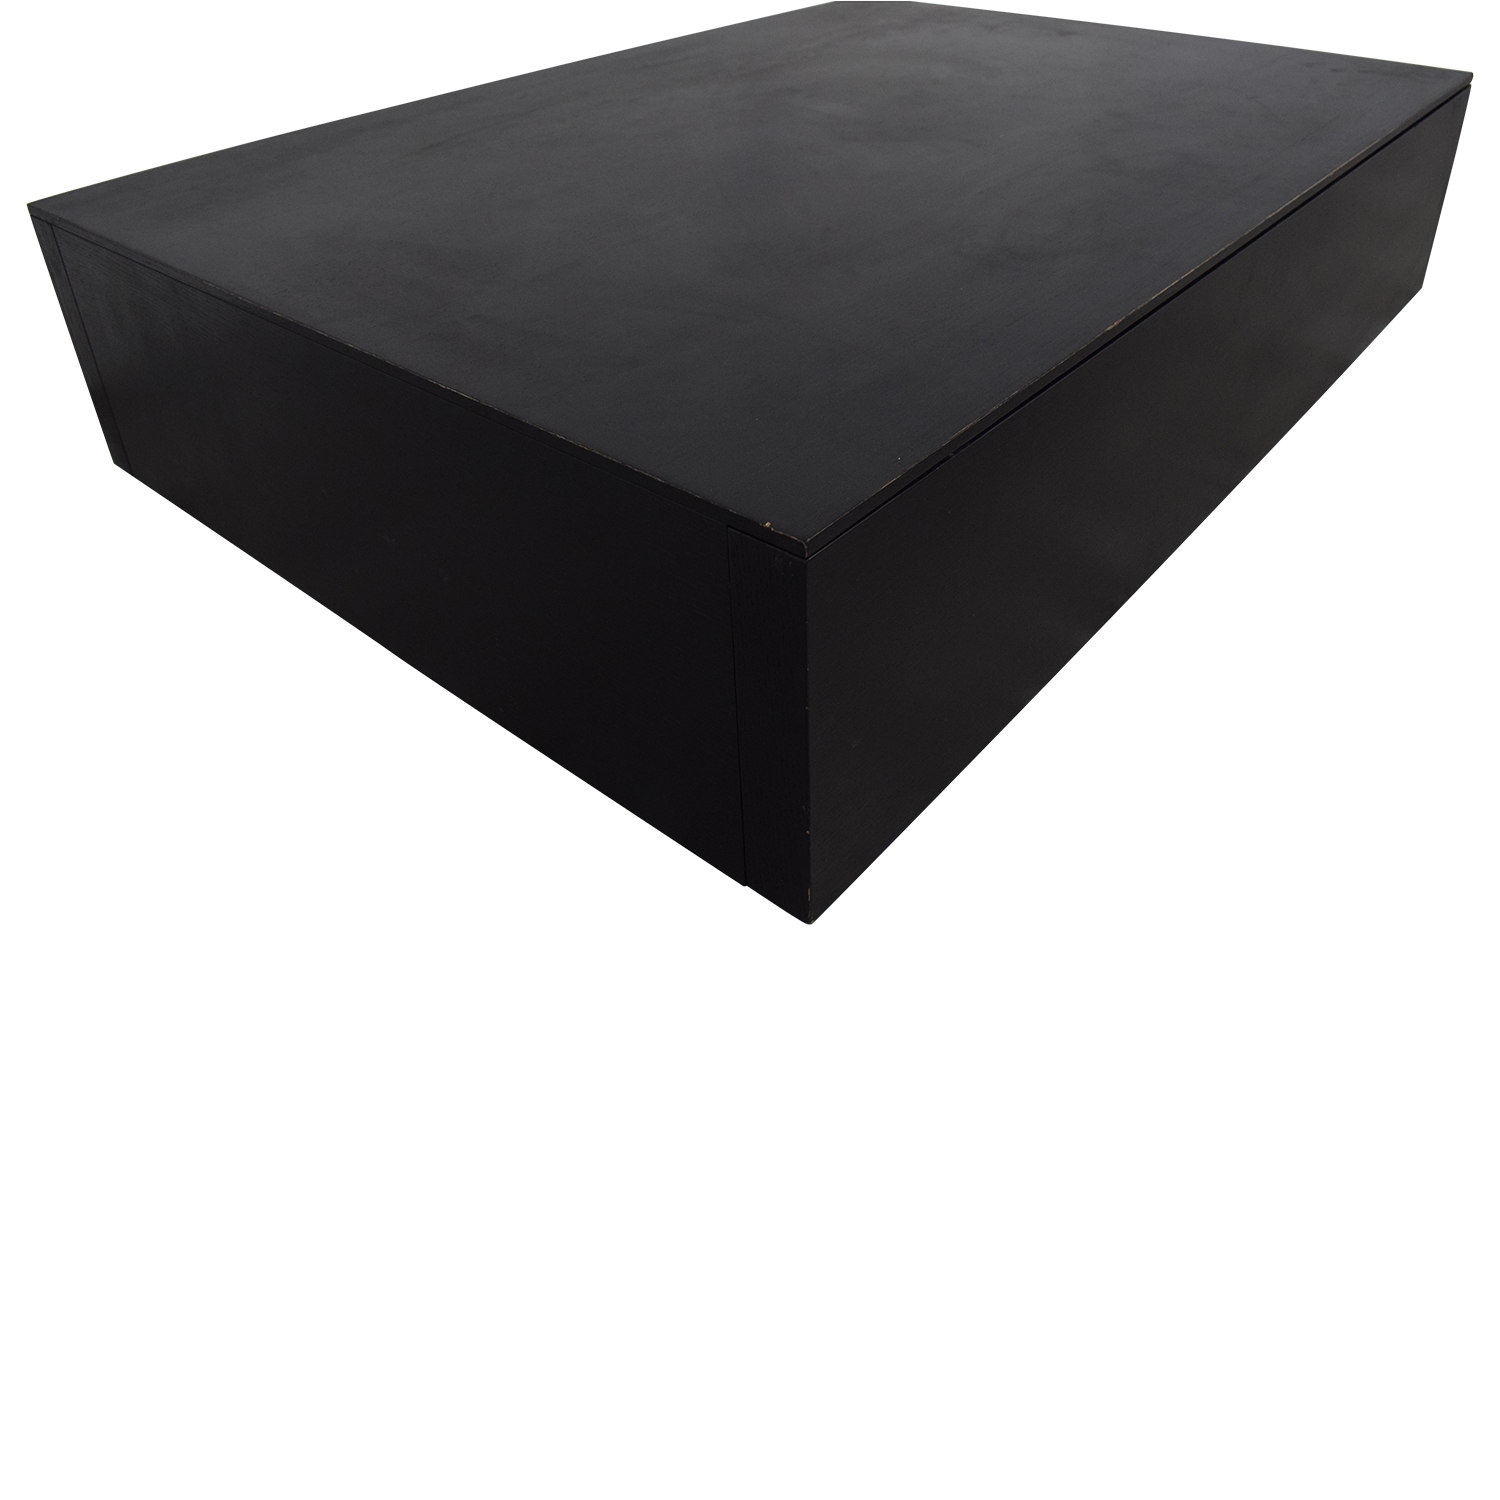 BoConcept BoConcept Black Coffee Table black